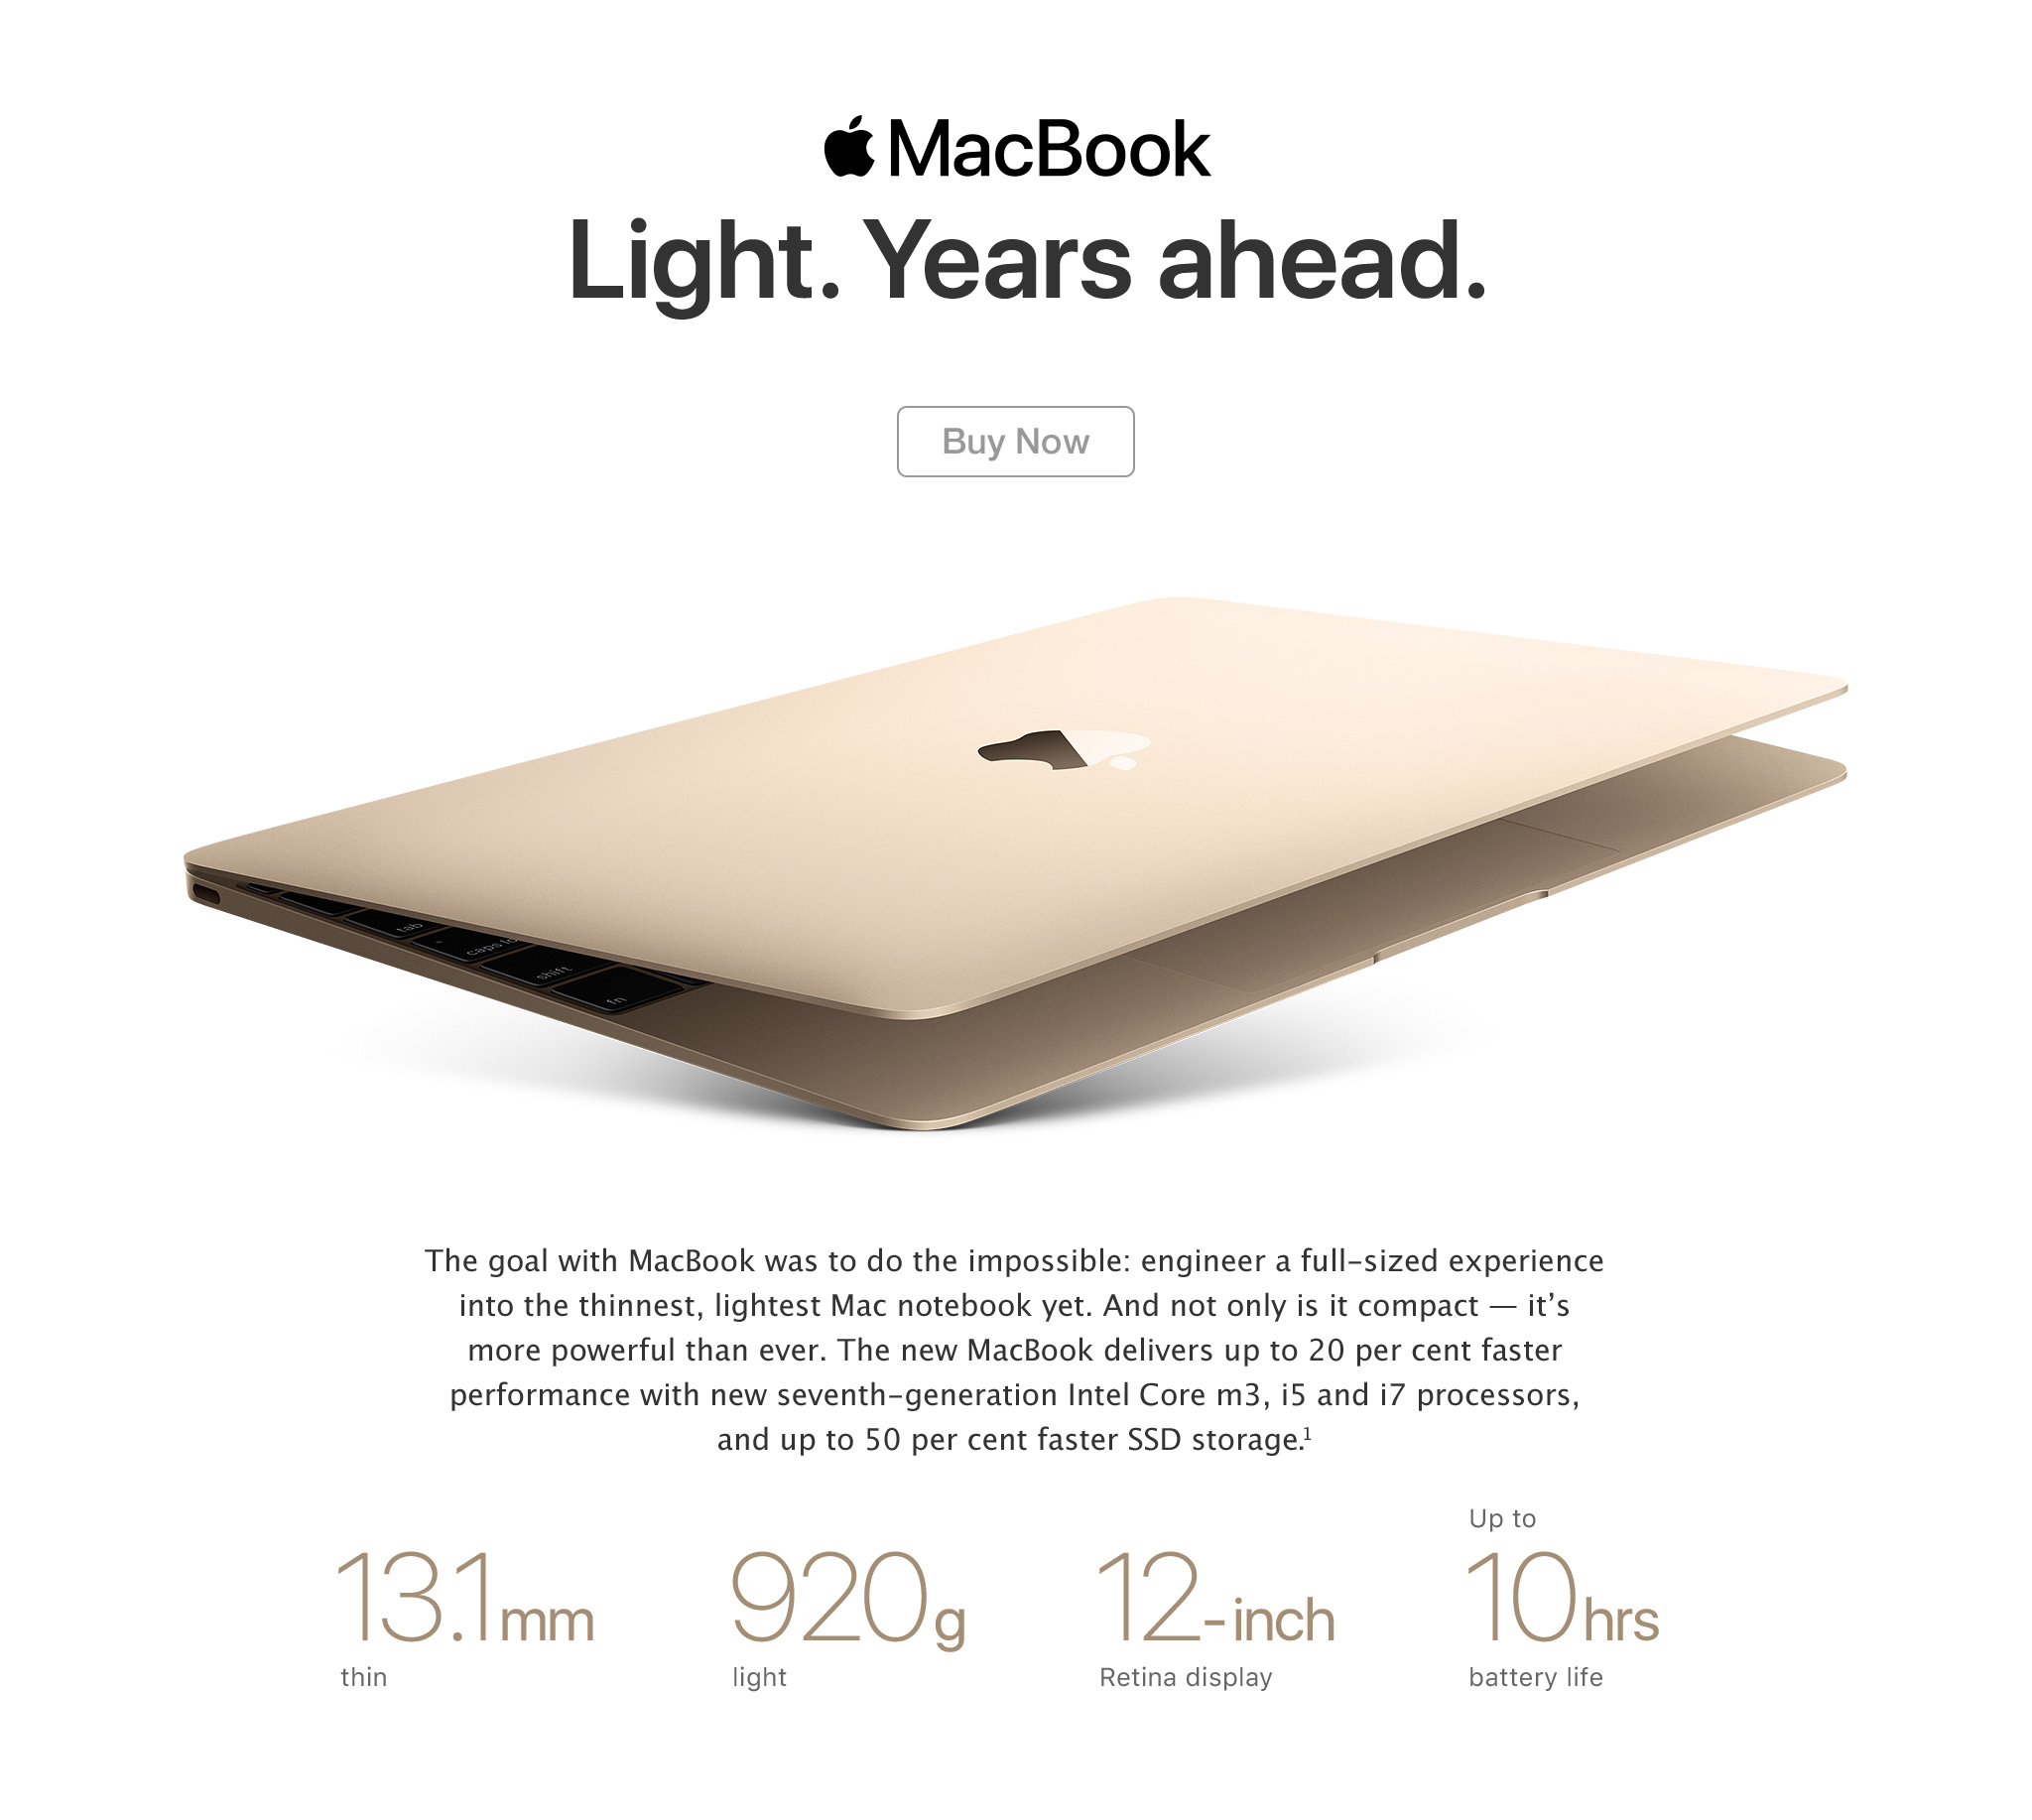 MacBook buy now